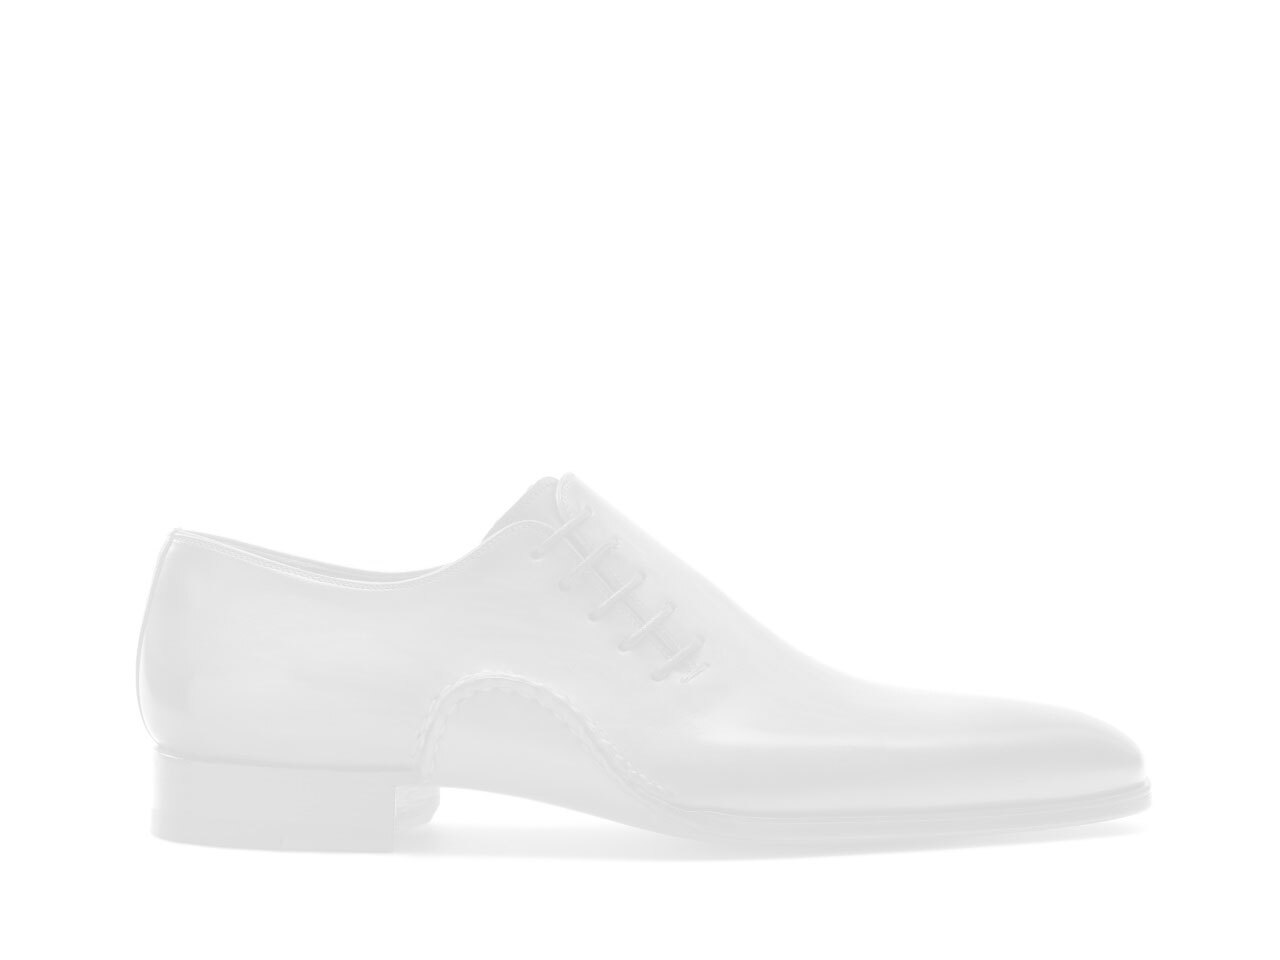 Sole of the Magnanni Marlow Tinto Men's Sneakers